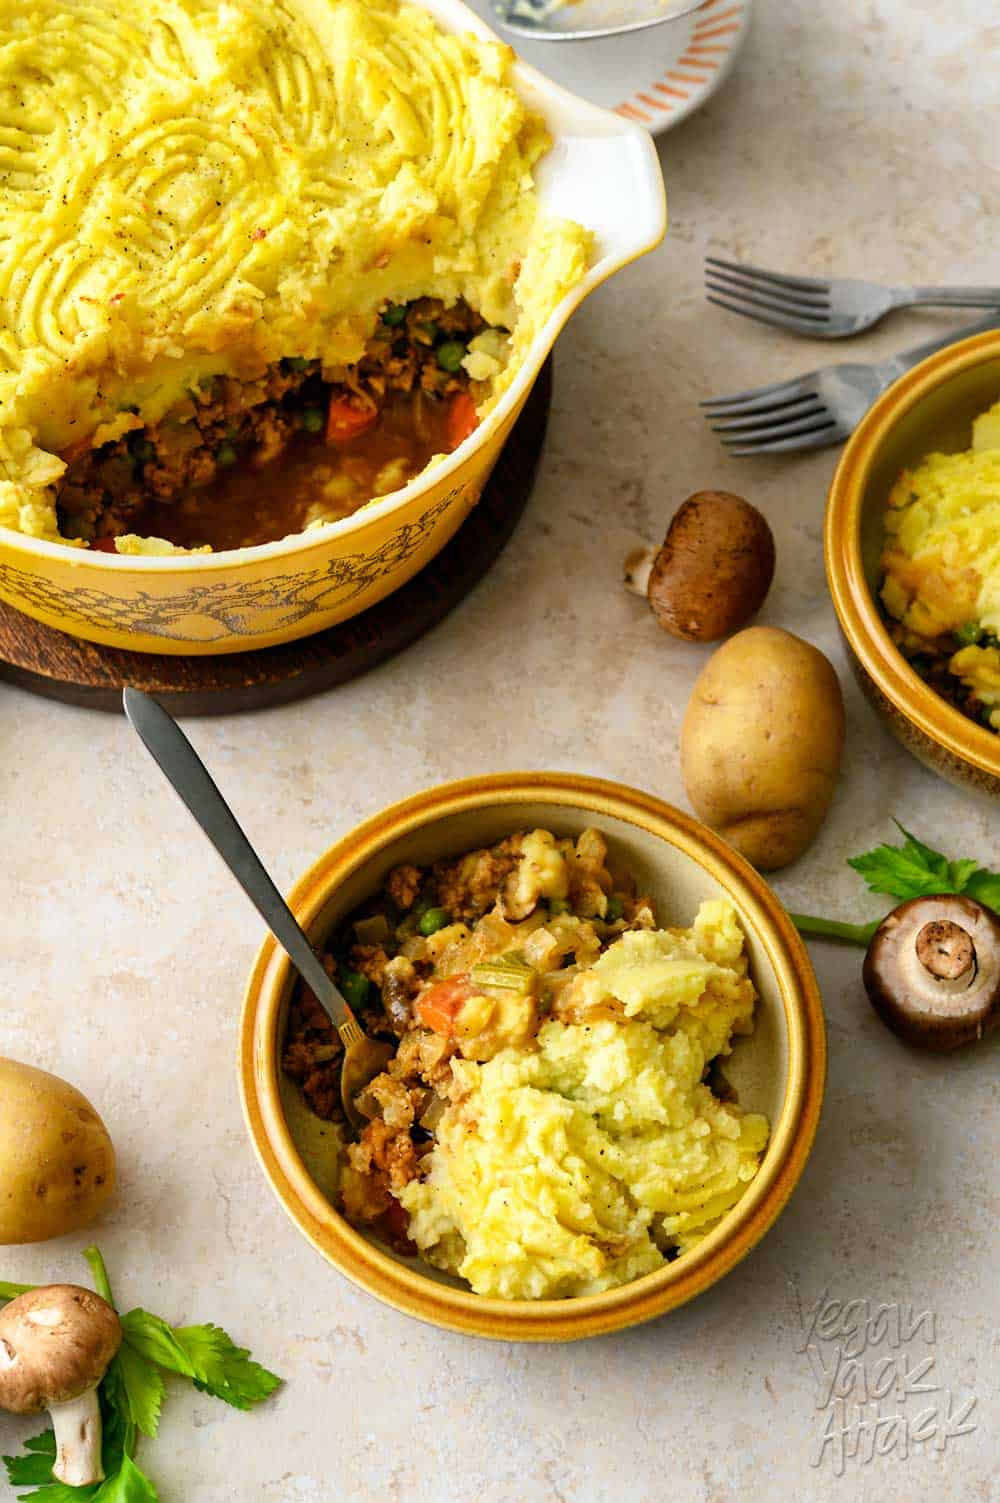 One casserole dish filled with a vegan shepherd's pie, spooned into two bowls, with potatoes and mushrooms scattered around them, on a light linoleum background.